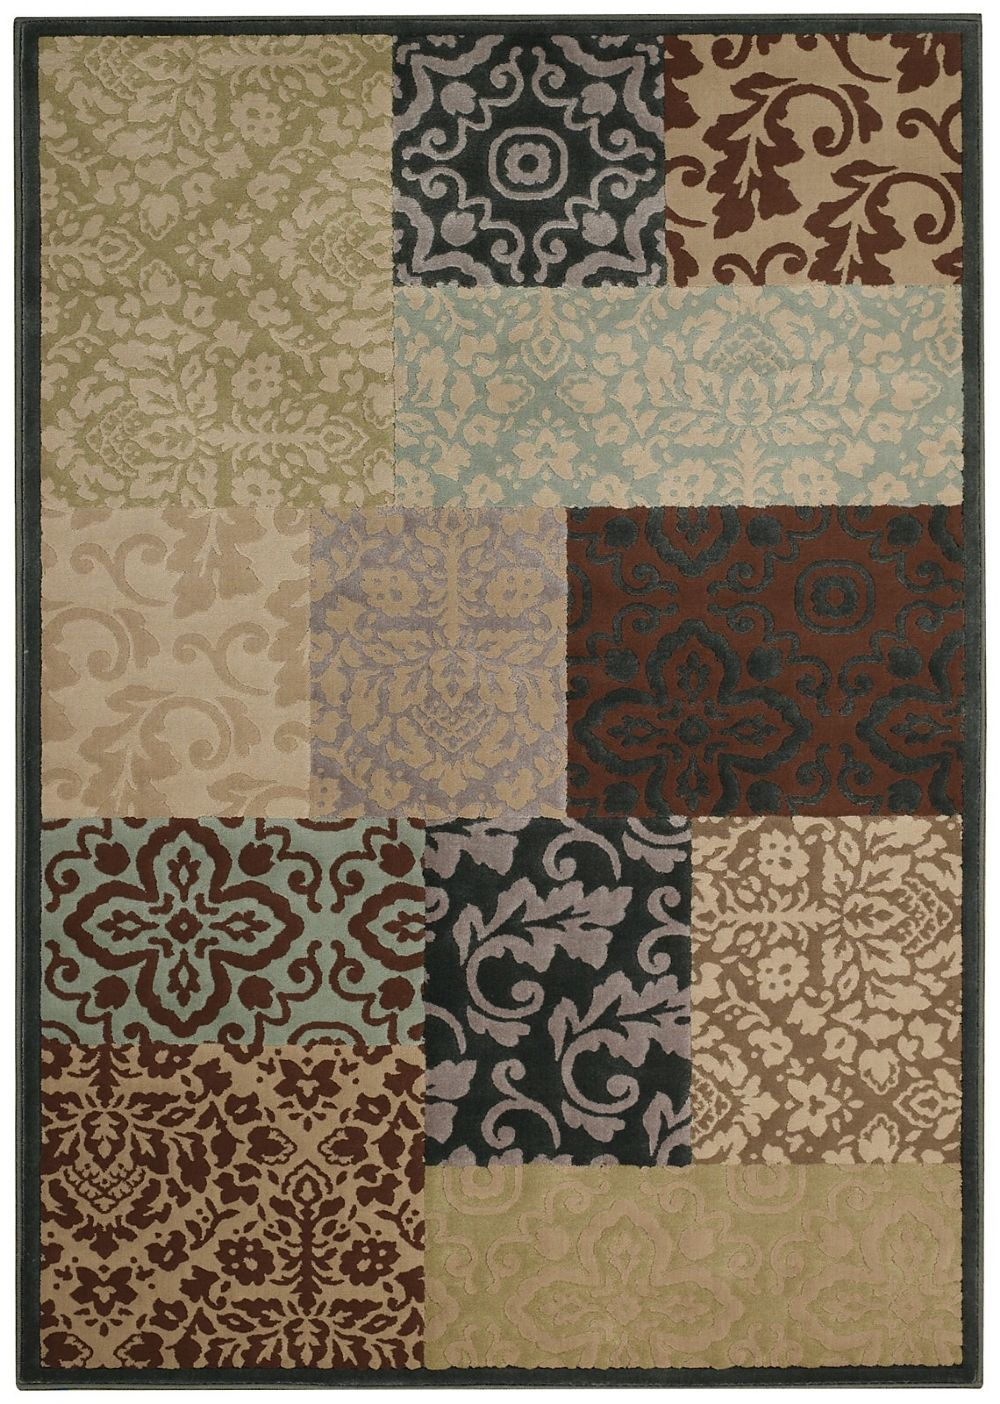 capel quiescent-damask sq. contemporary area rug collection